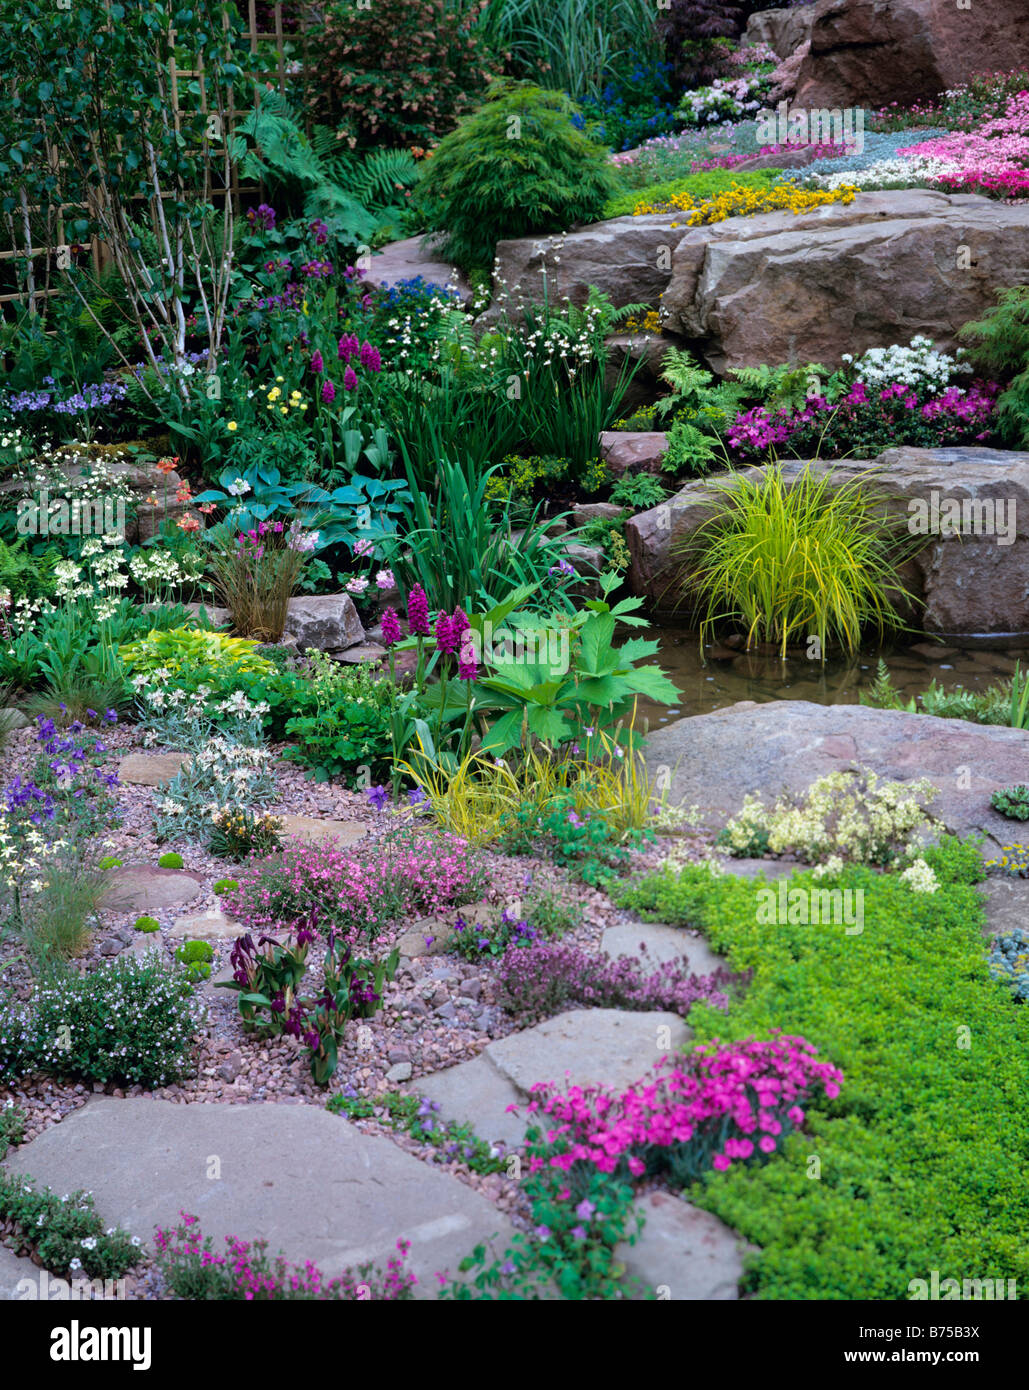 Colourful alpine rockery with pool - Stock Image